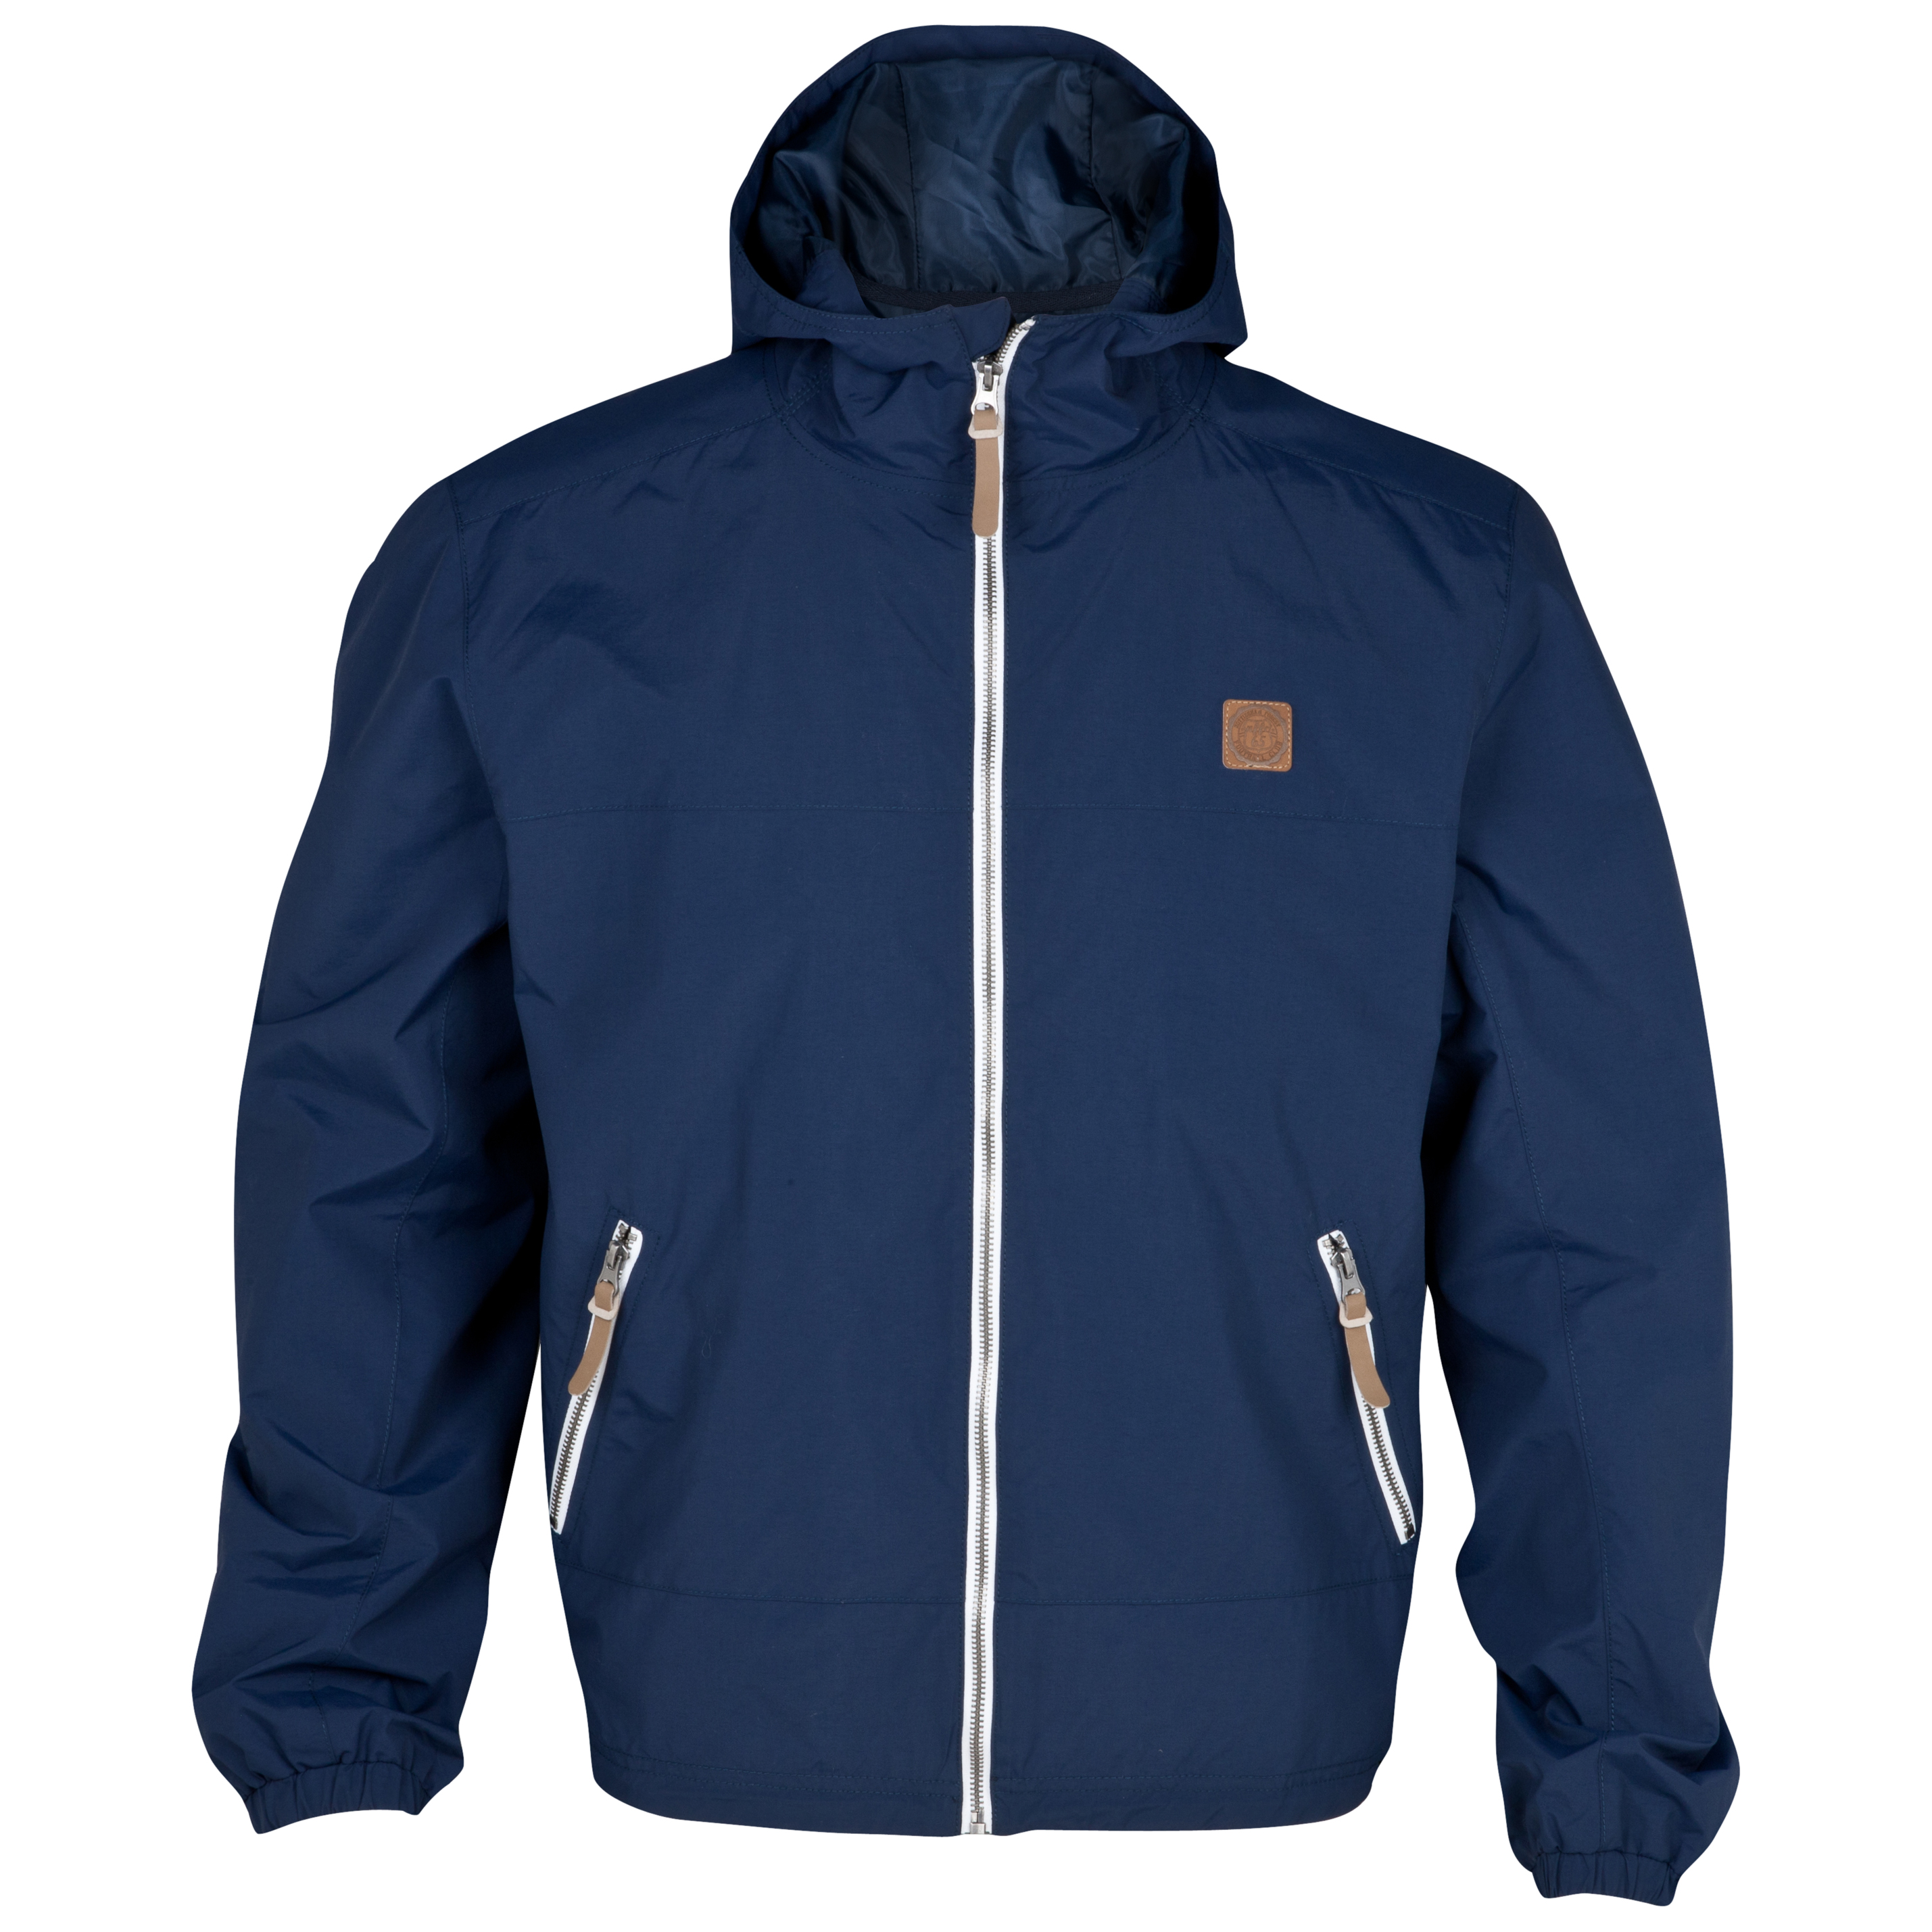 Nottingham Forest Breeze Jacket - Navy